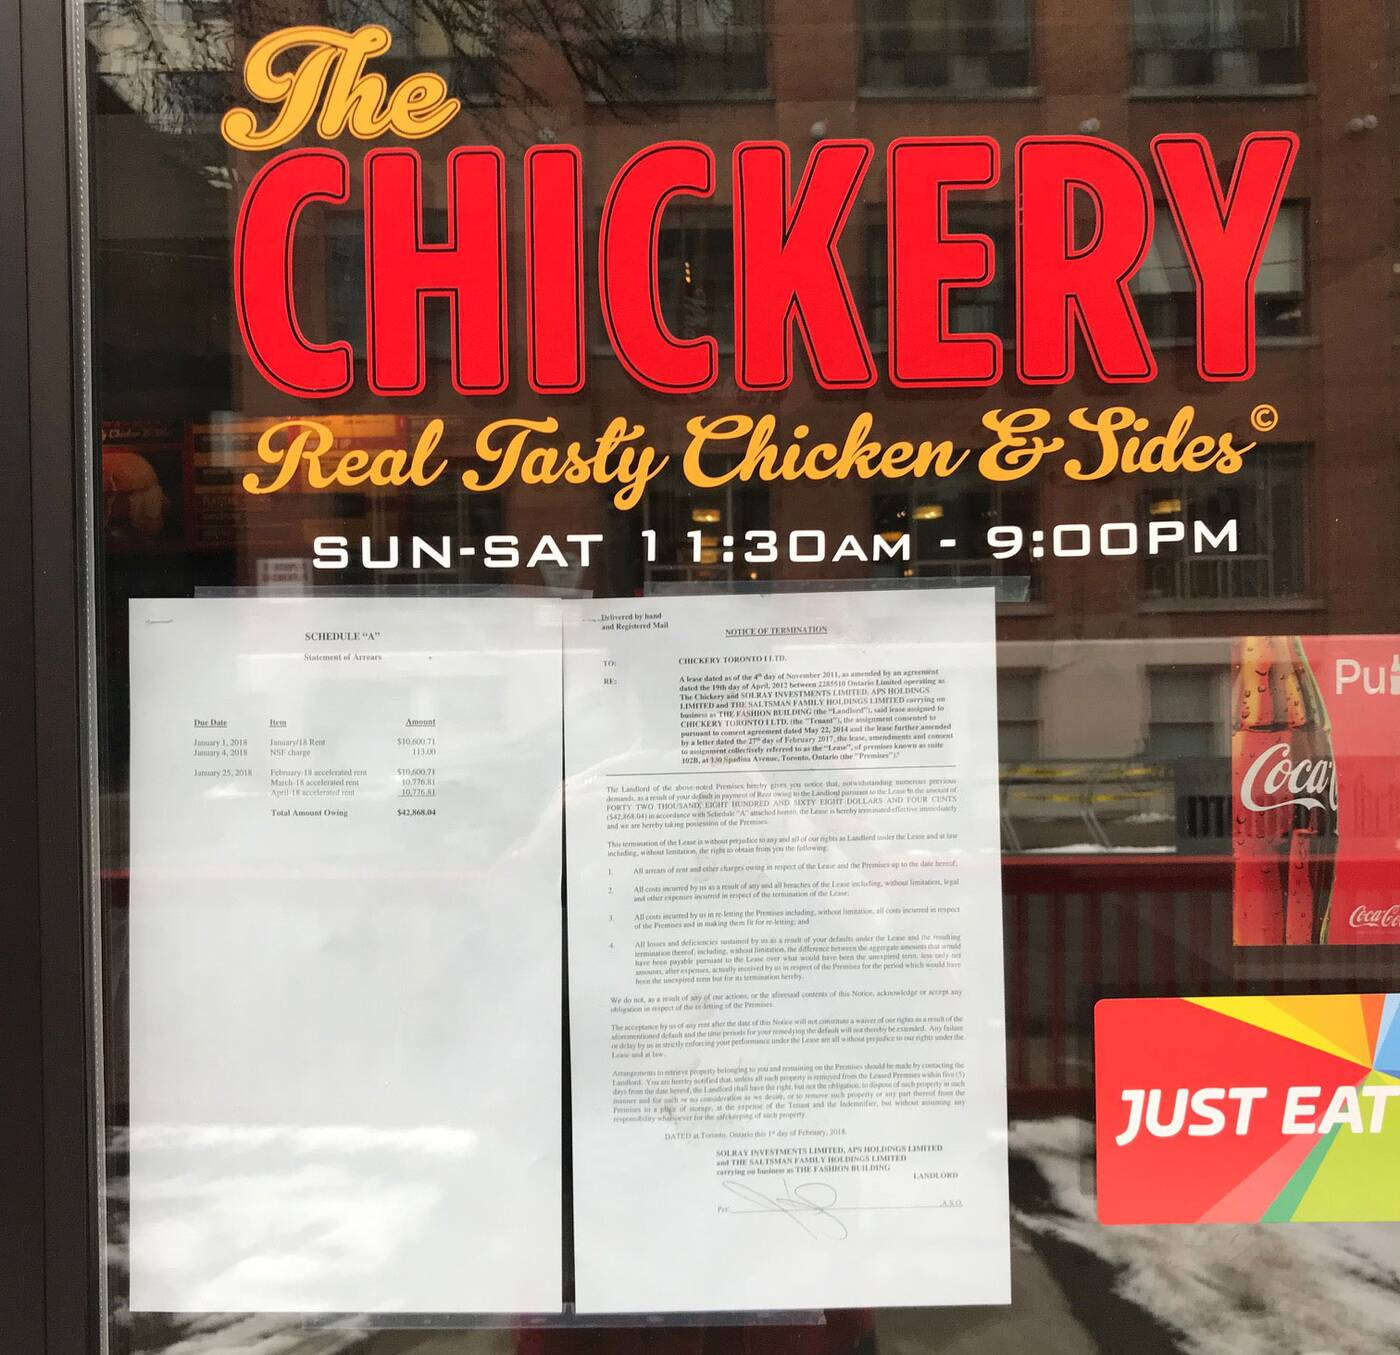 The Chickery closed